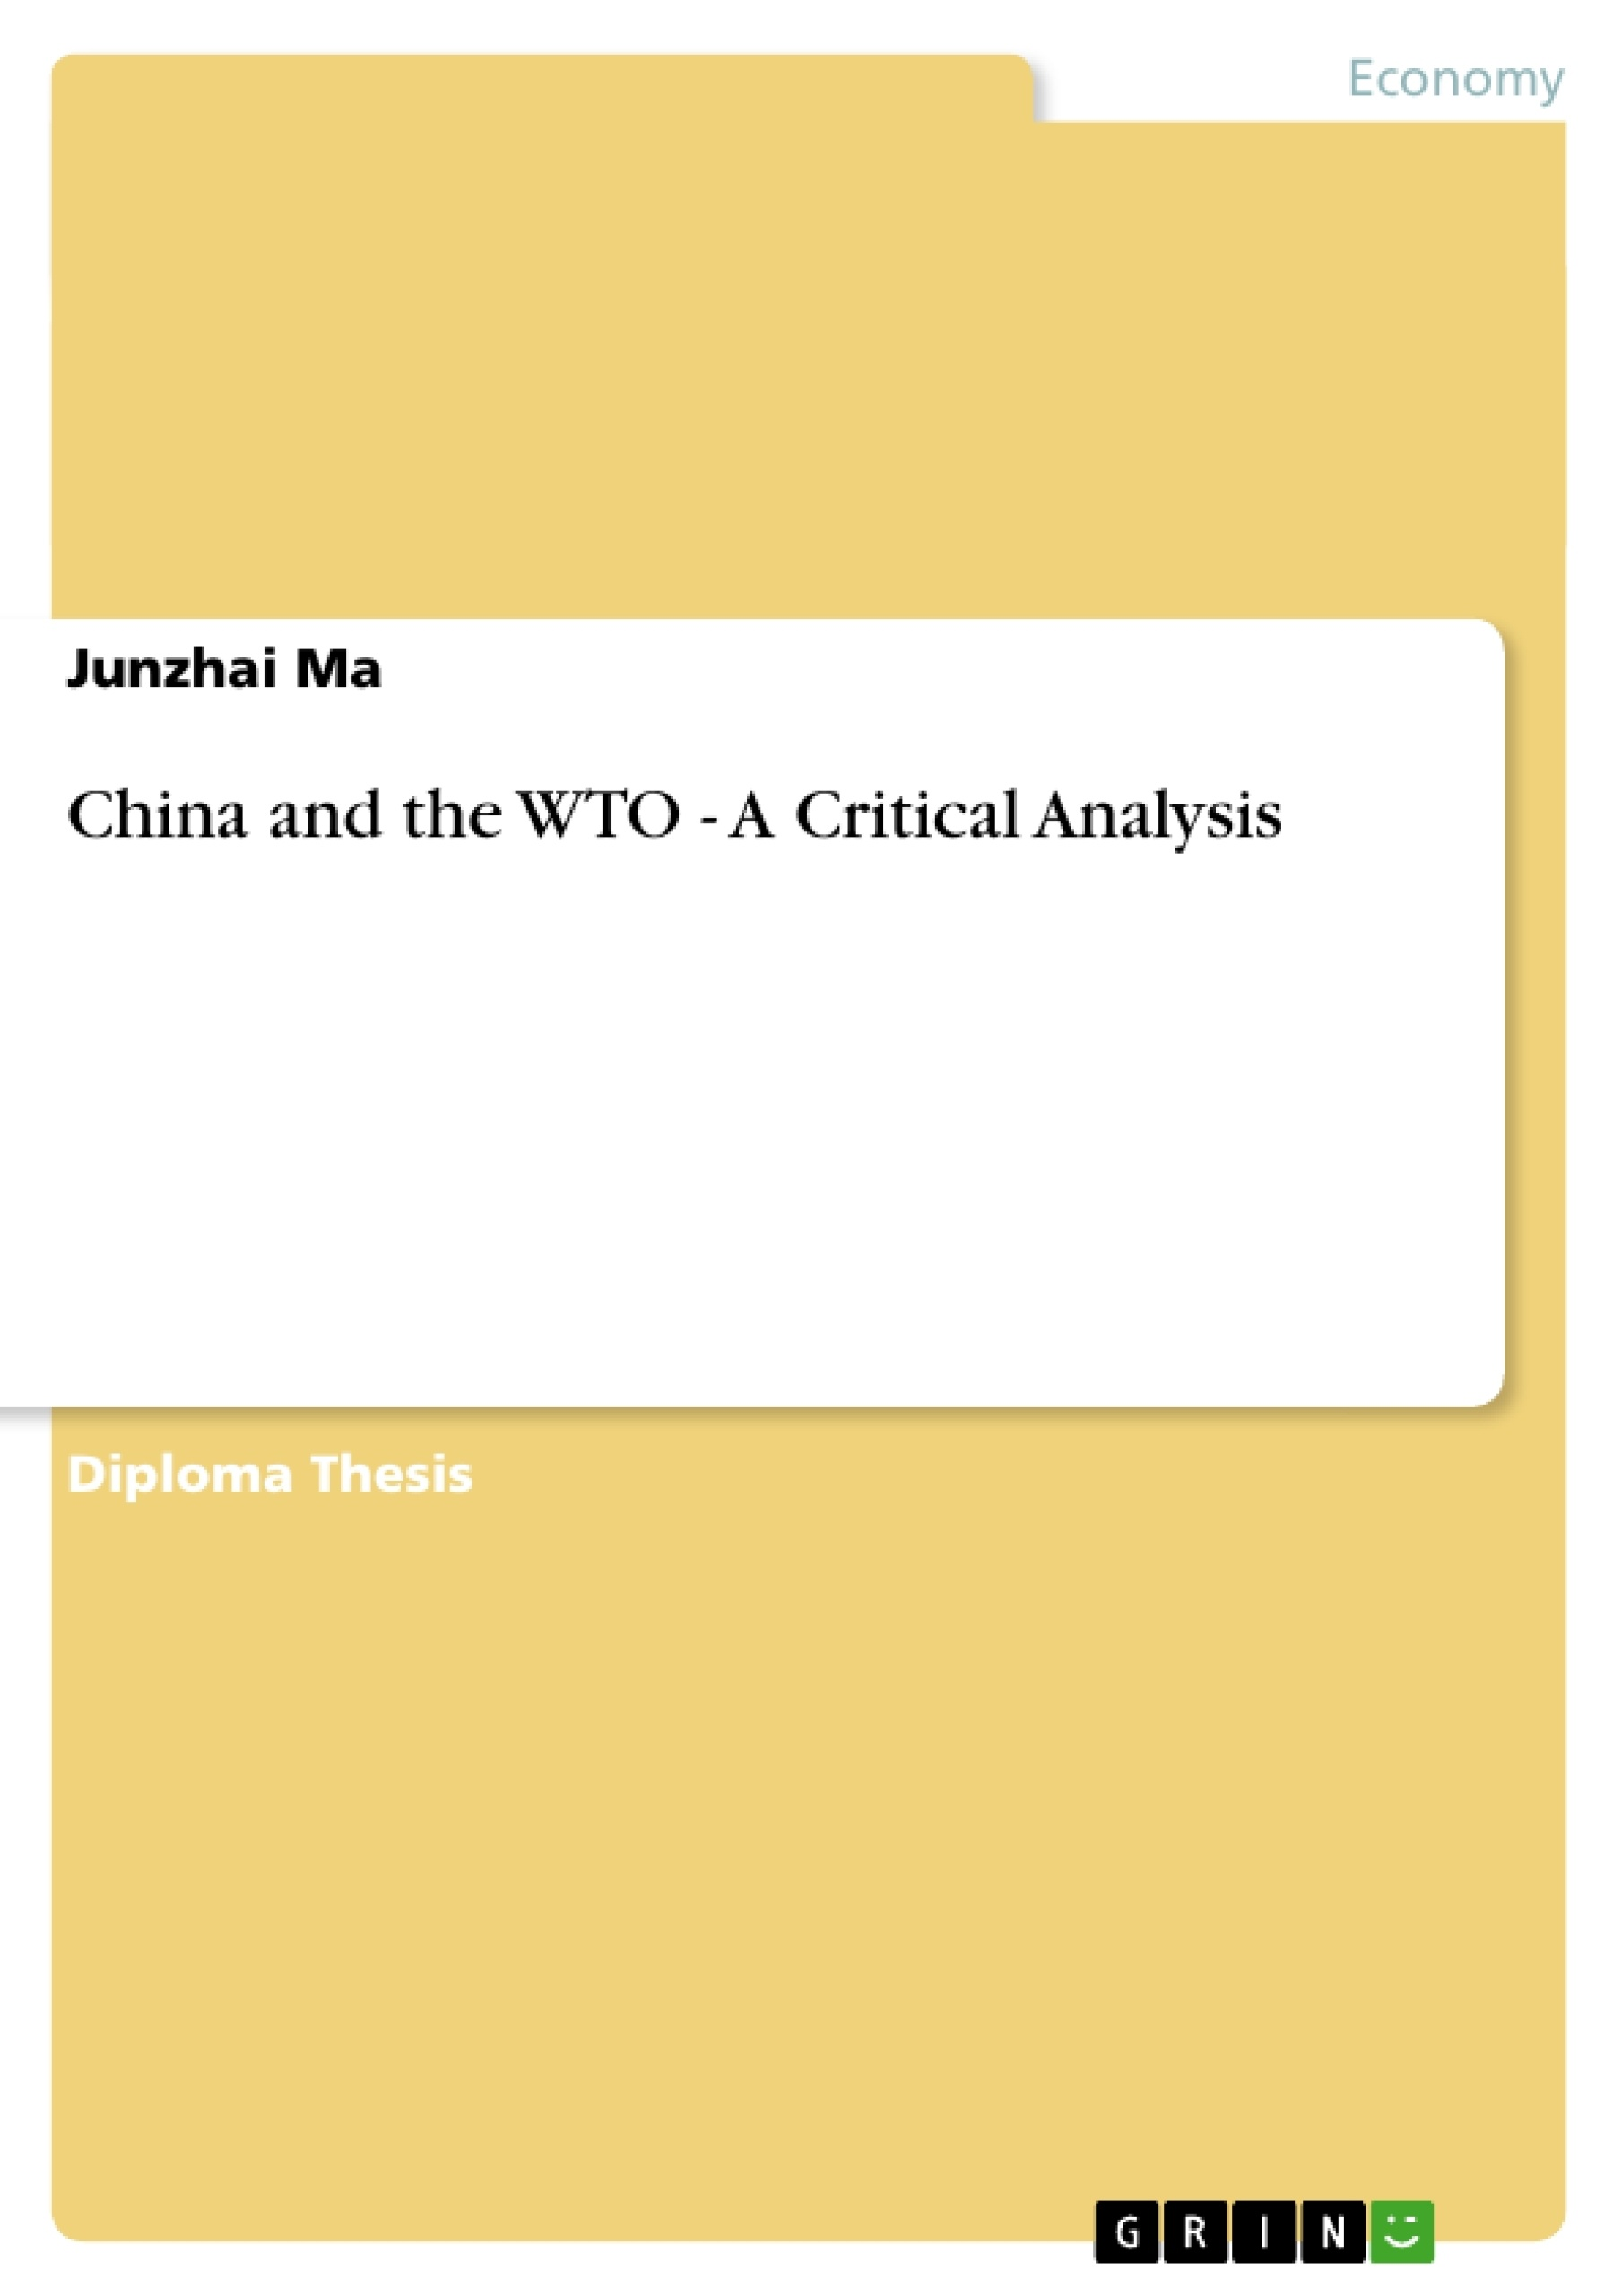 Title: China and the WTO - A Critical Analysis